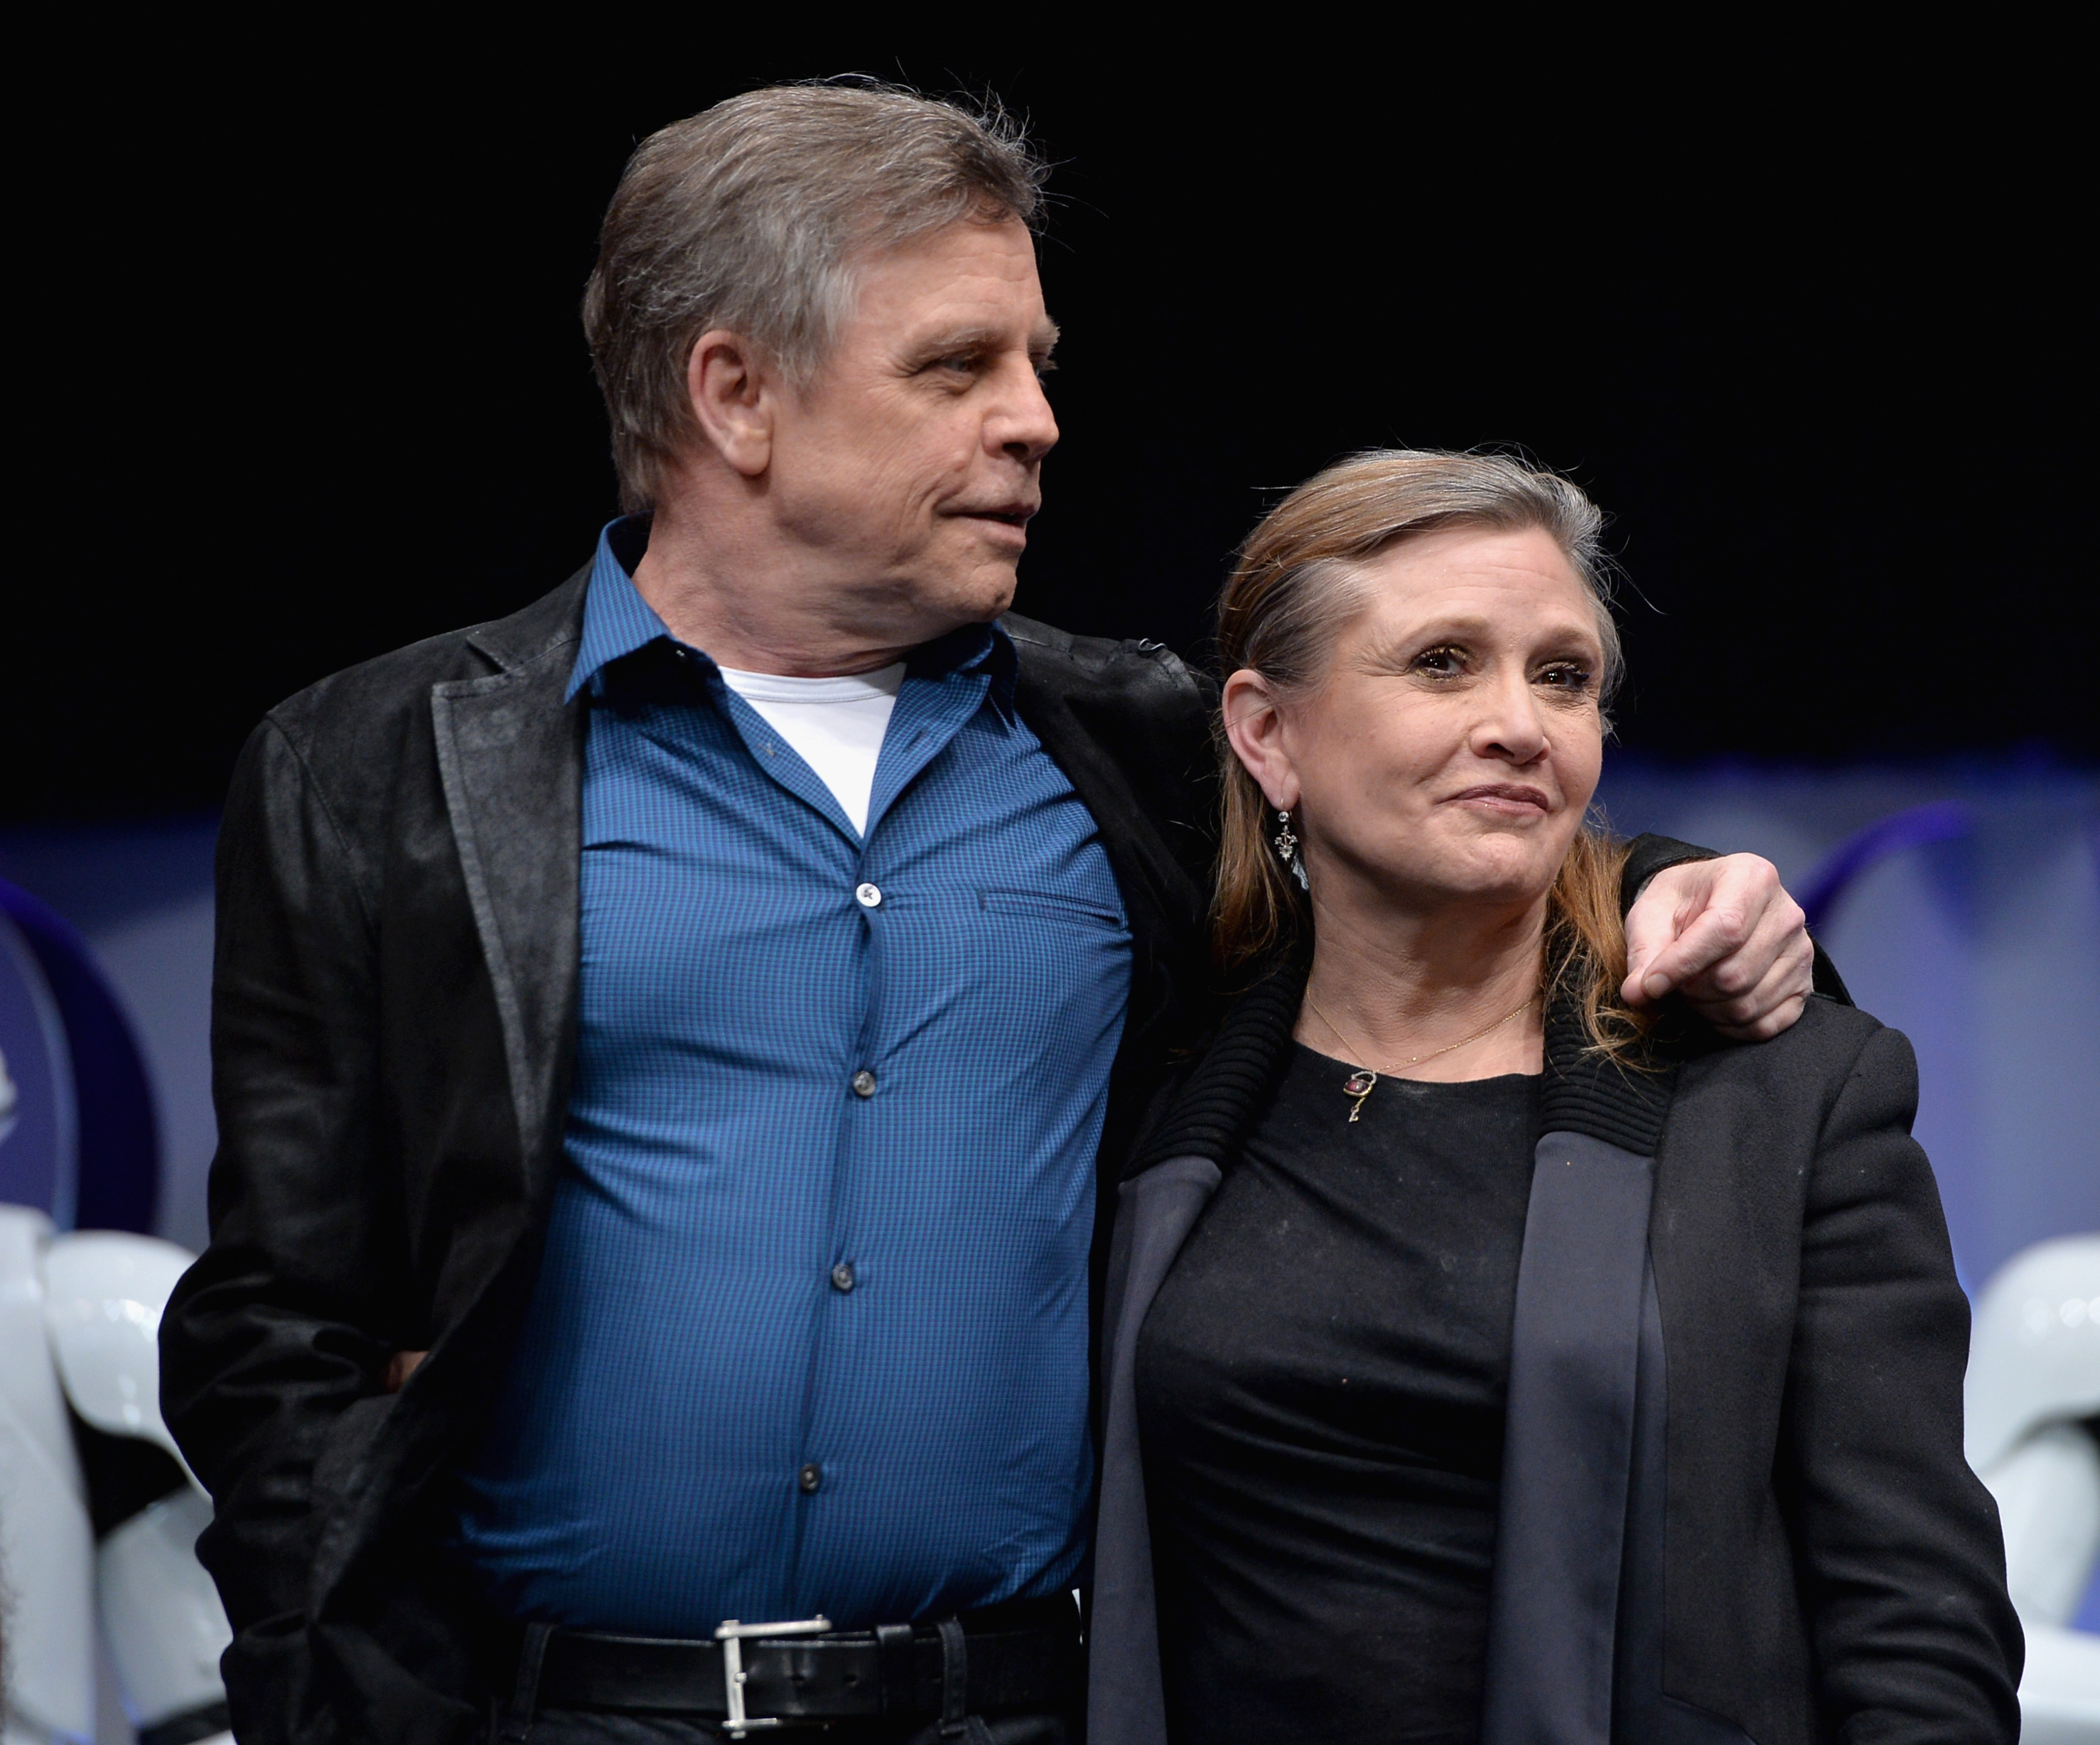 Actors Mark Hamill (L) and Carrie Fisher speak onstage during Star Wars Celebration 2015 on April 16, 2015 in Anaheim, California.